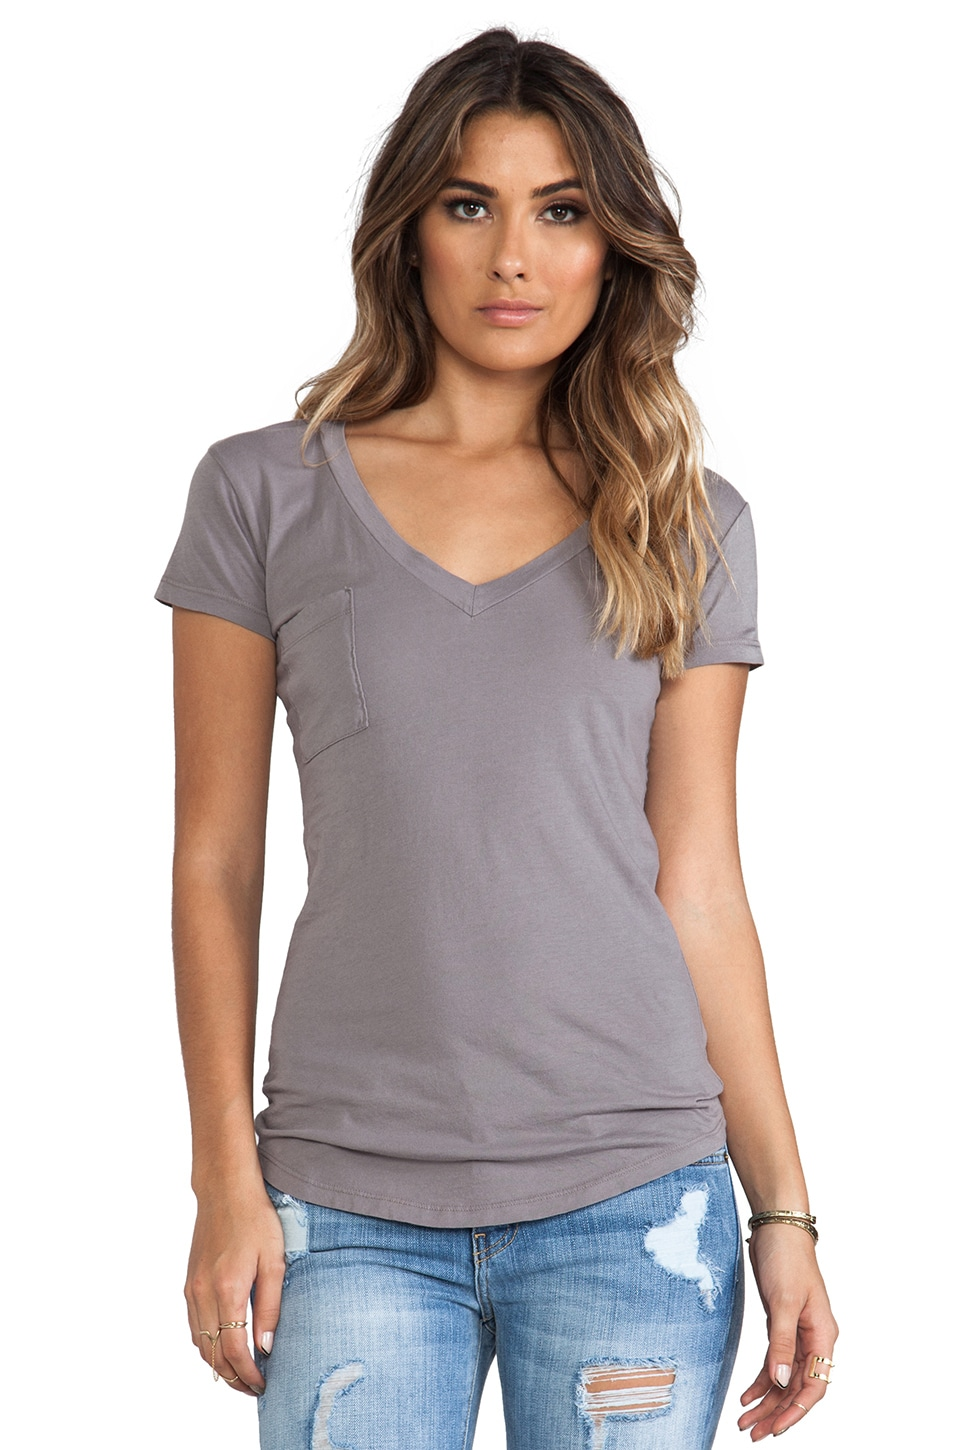 LA Made Tissue Jersey V-Neck Pocket Tee in Chateau Grey